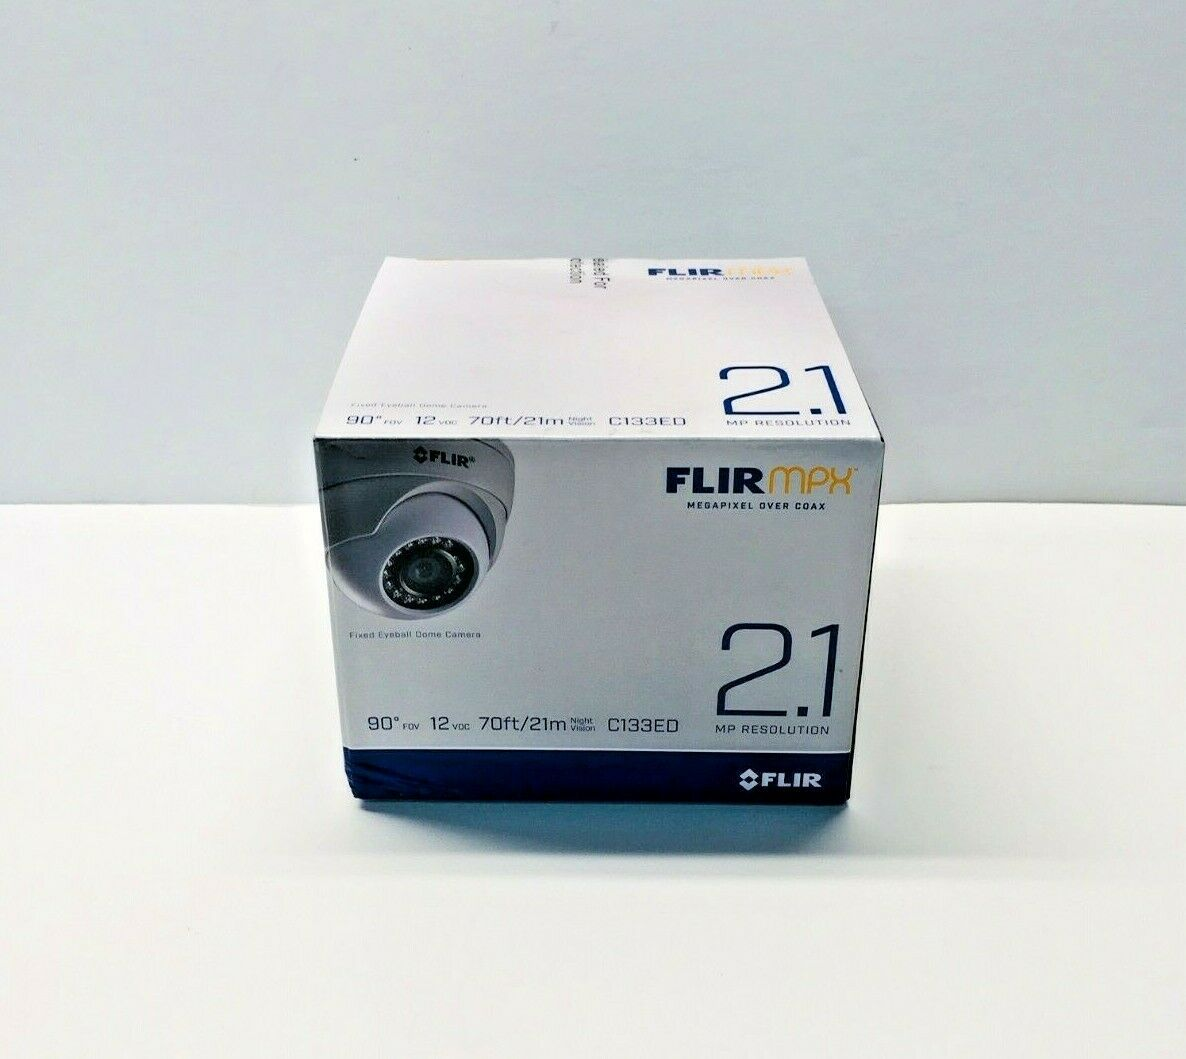 New FLIR 2.1MP HD Fixed Dome MPX Camera with 3.6mm F2.0 Lens C133ED